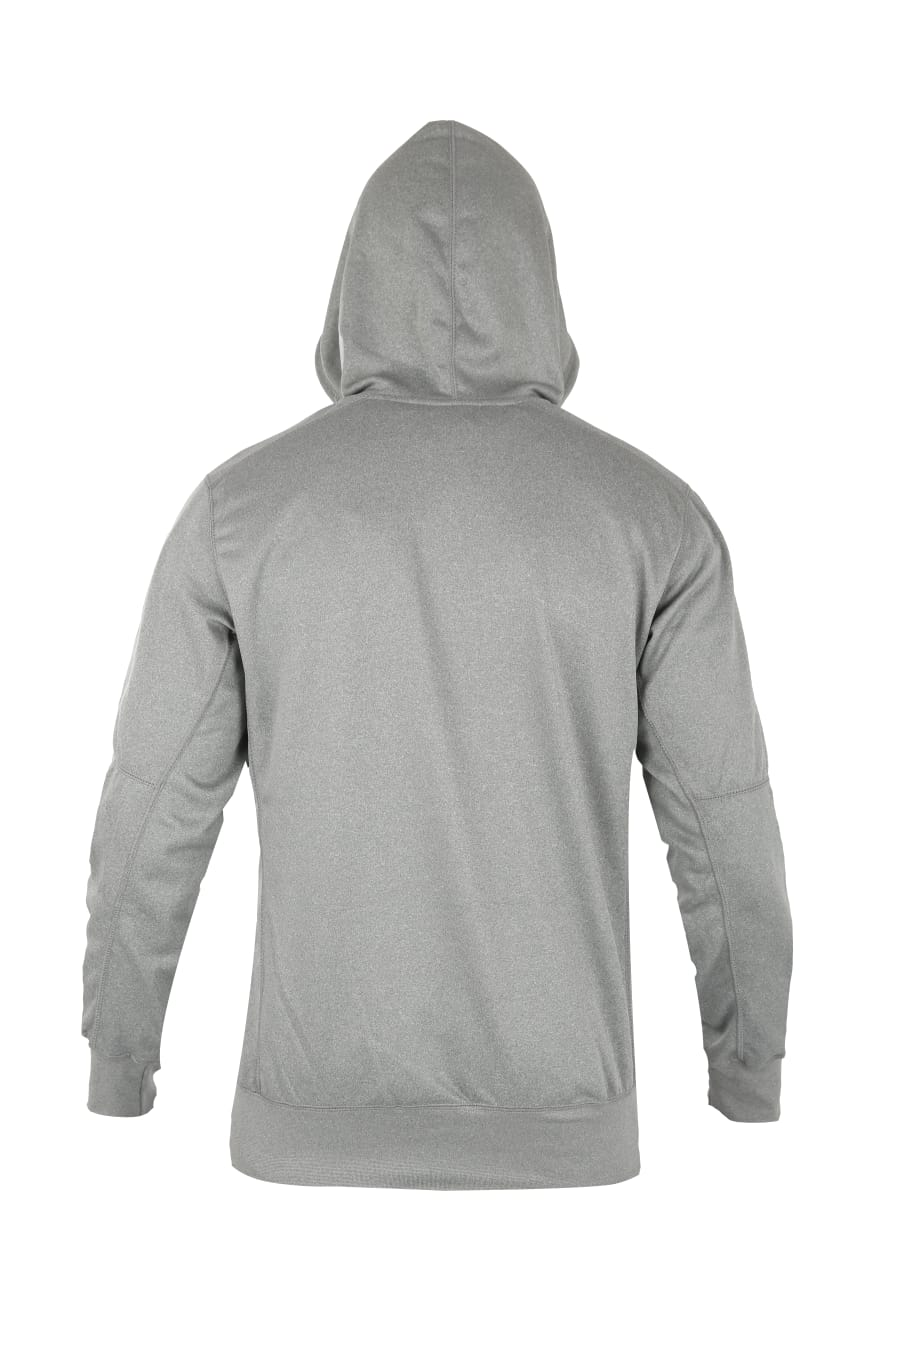 GiG Movement Grey Hoodie